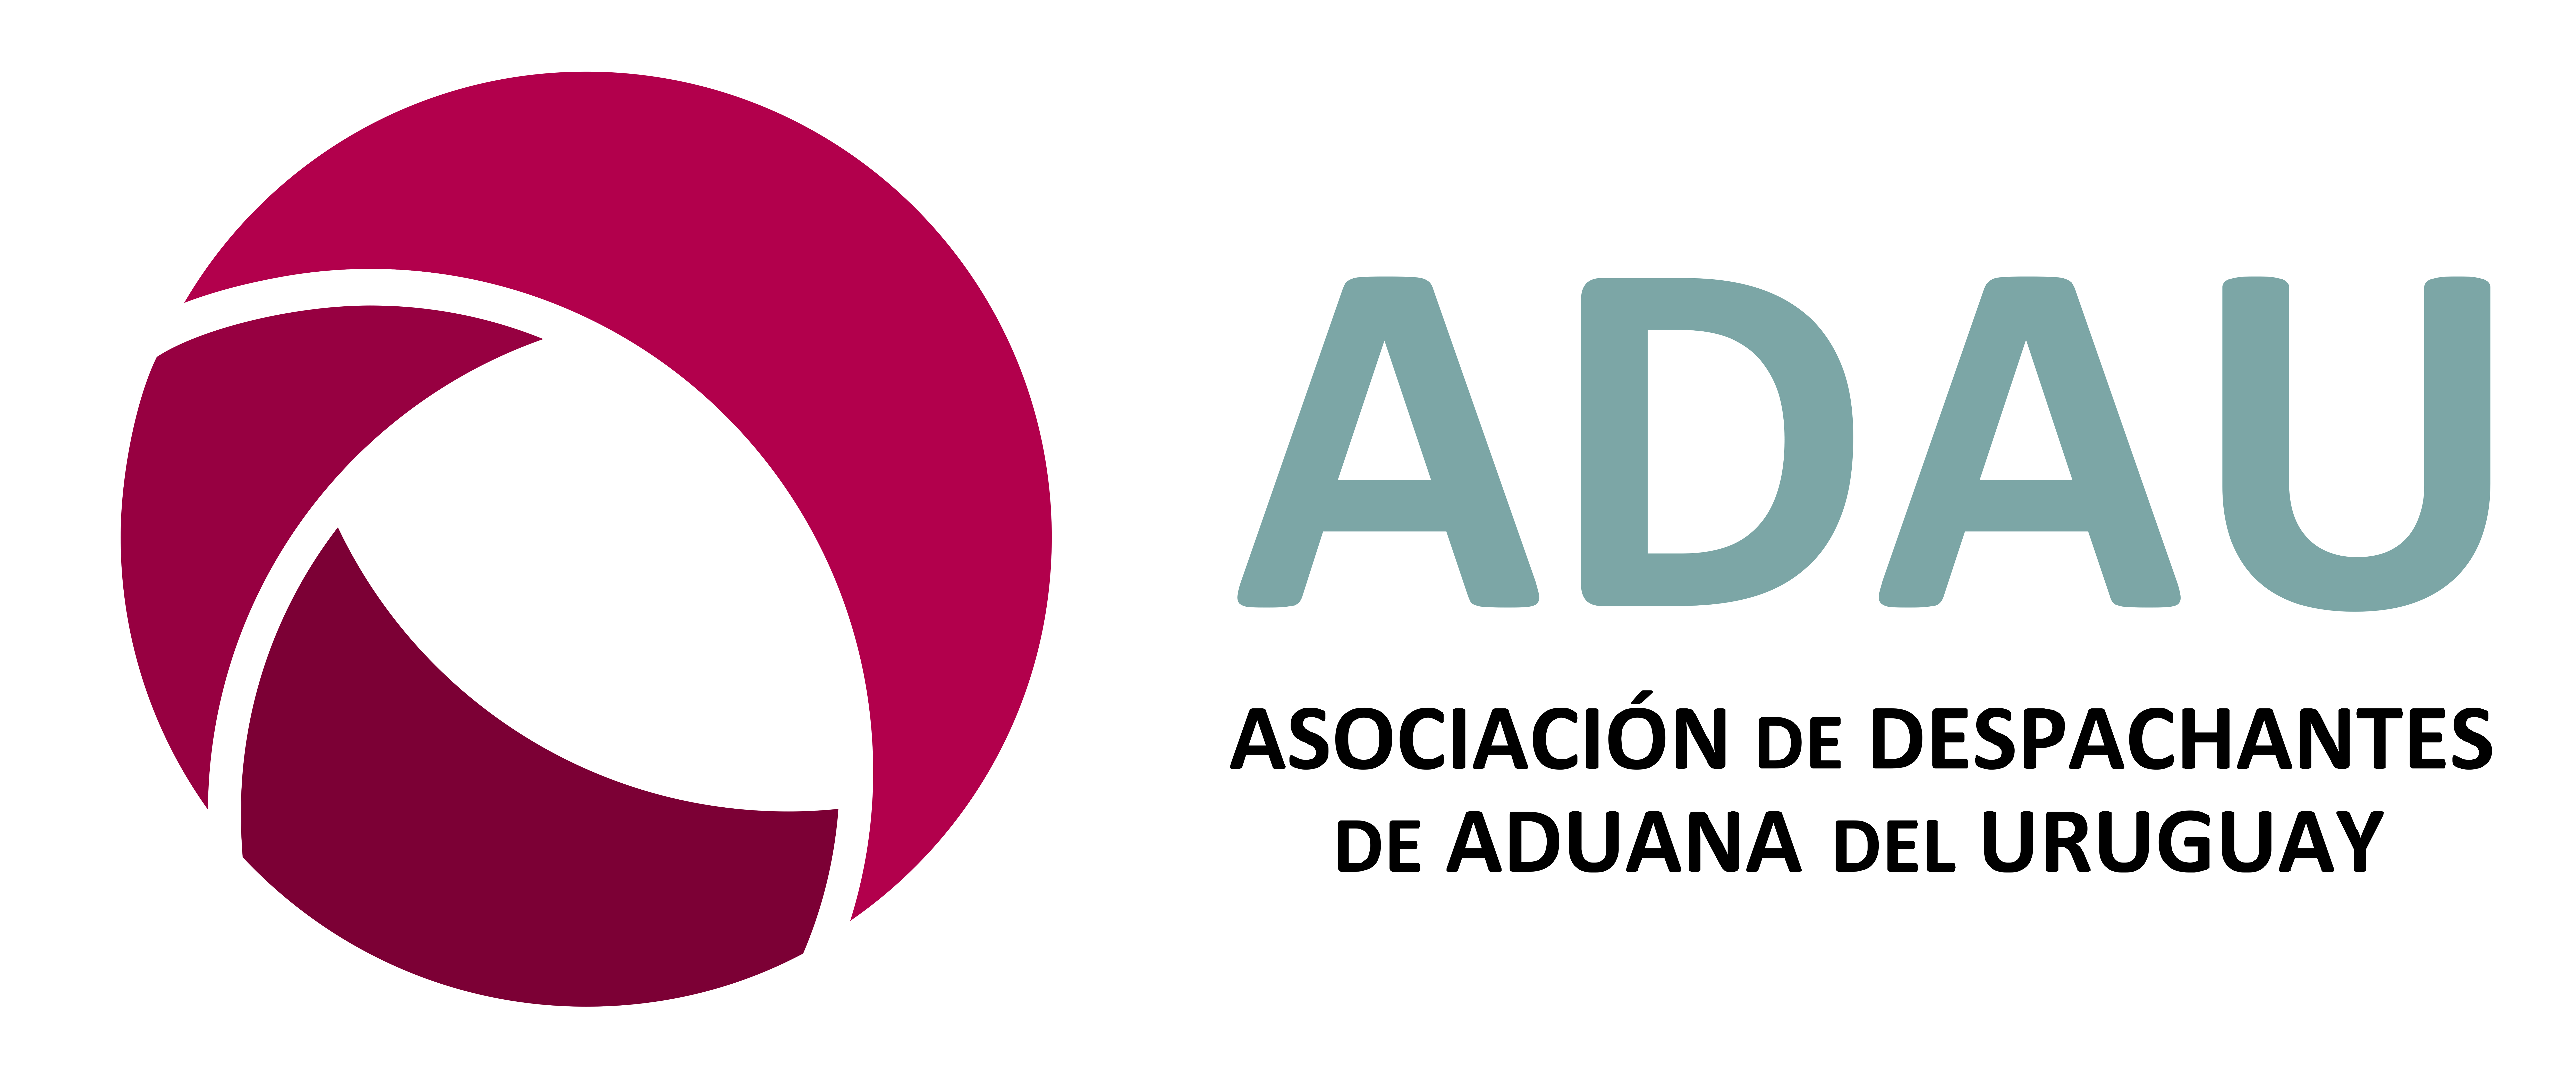 Logo de la organización